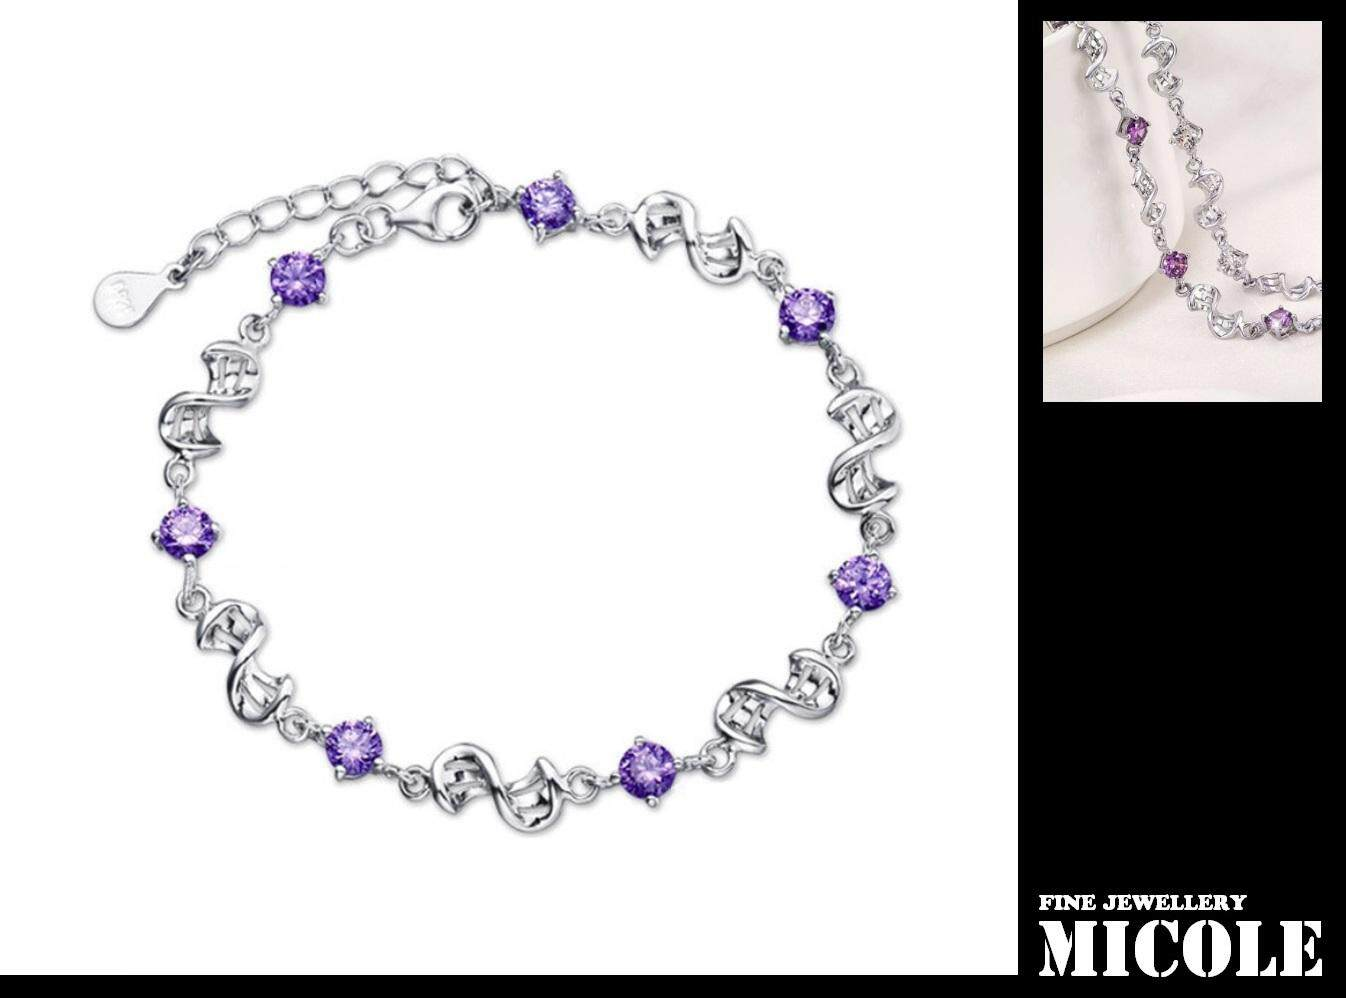 Ready Stock MICOLE B6009 Bracelets Charms Ladies Fashion Charm Bracelet